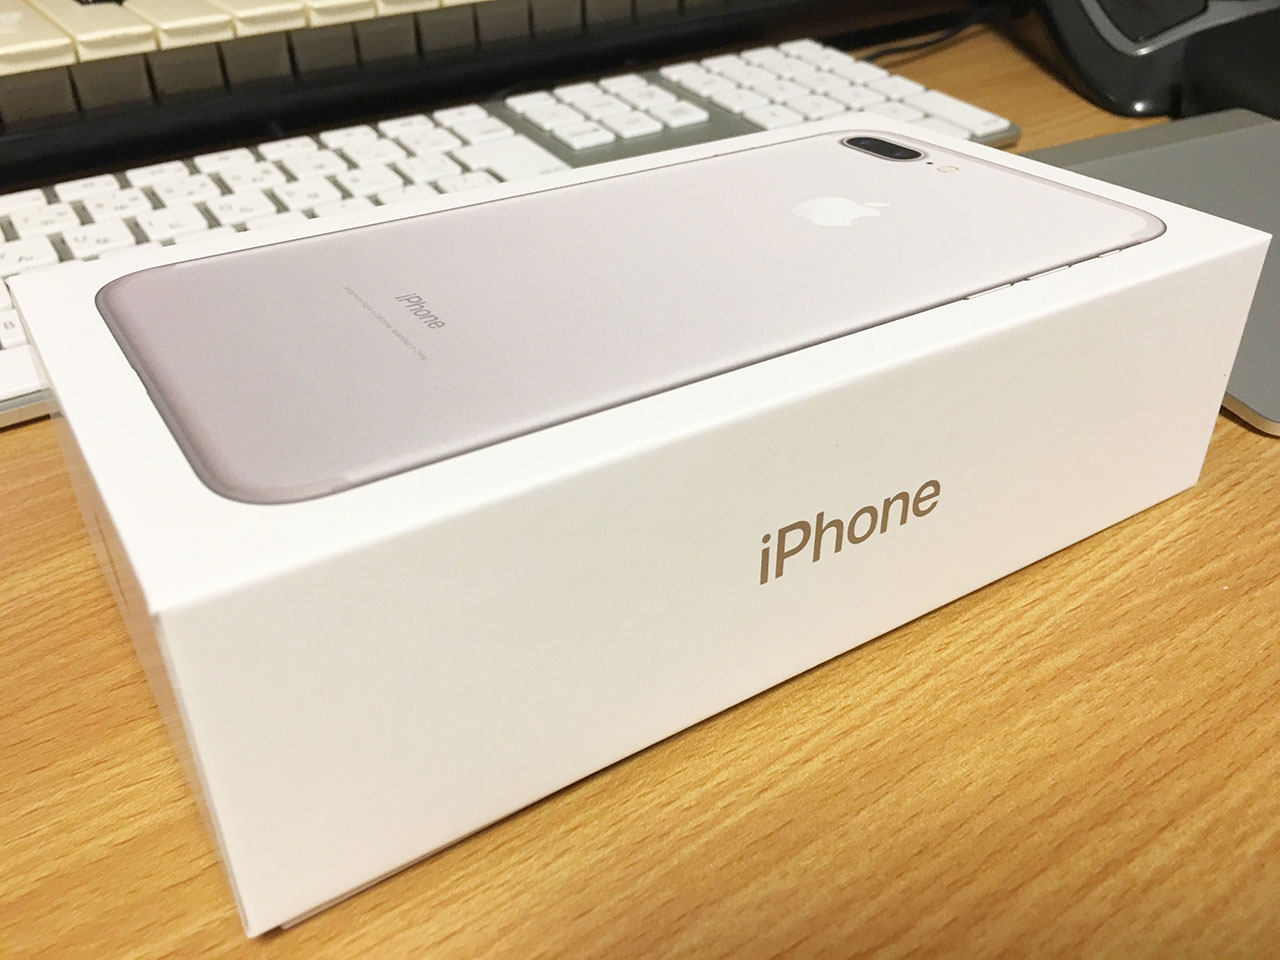 iphone-7-plus-first-impression-01